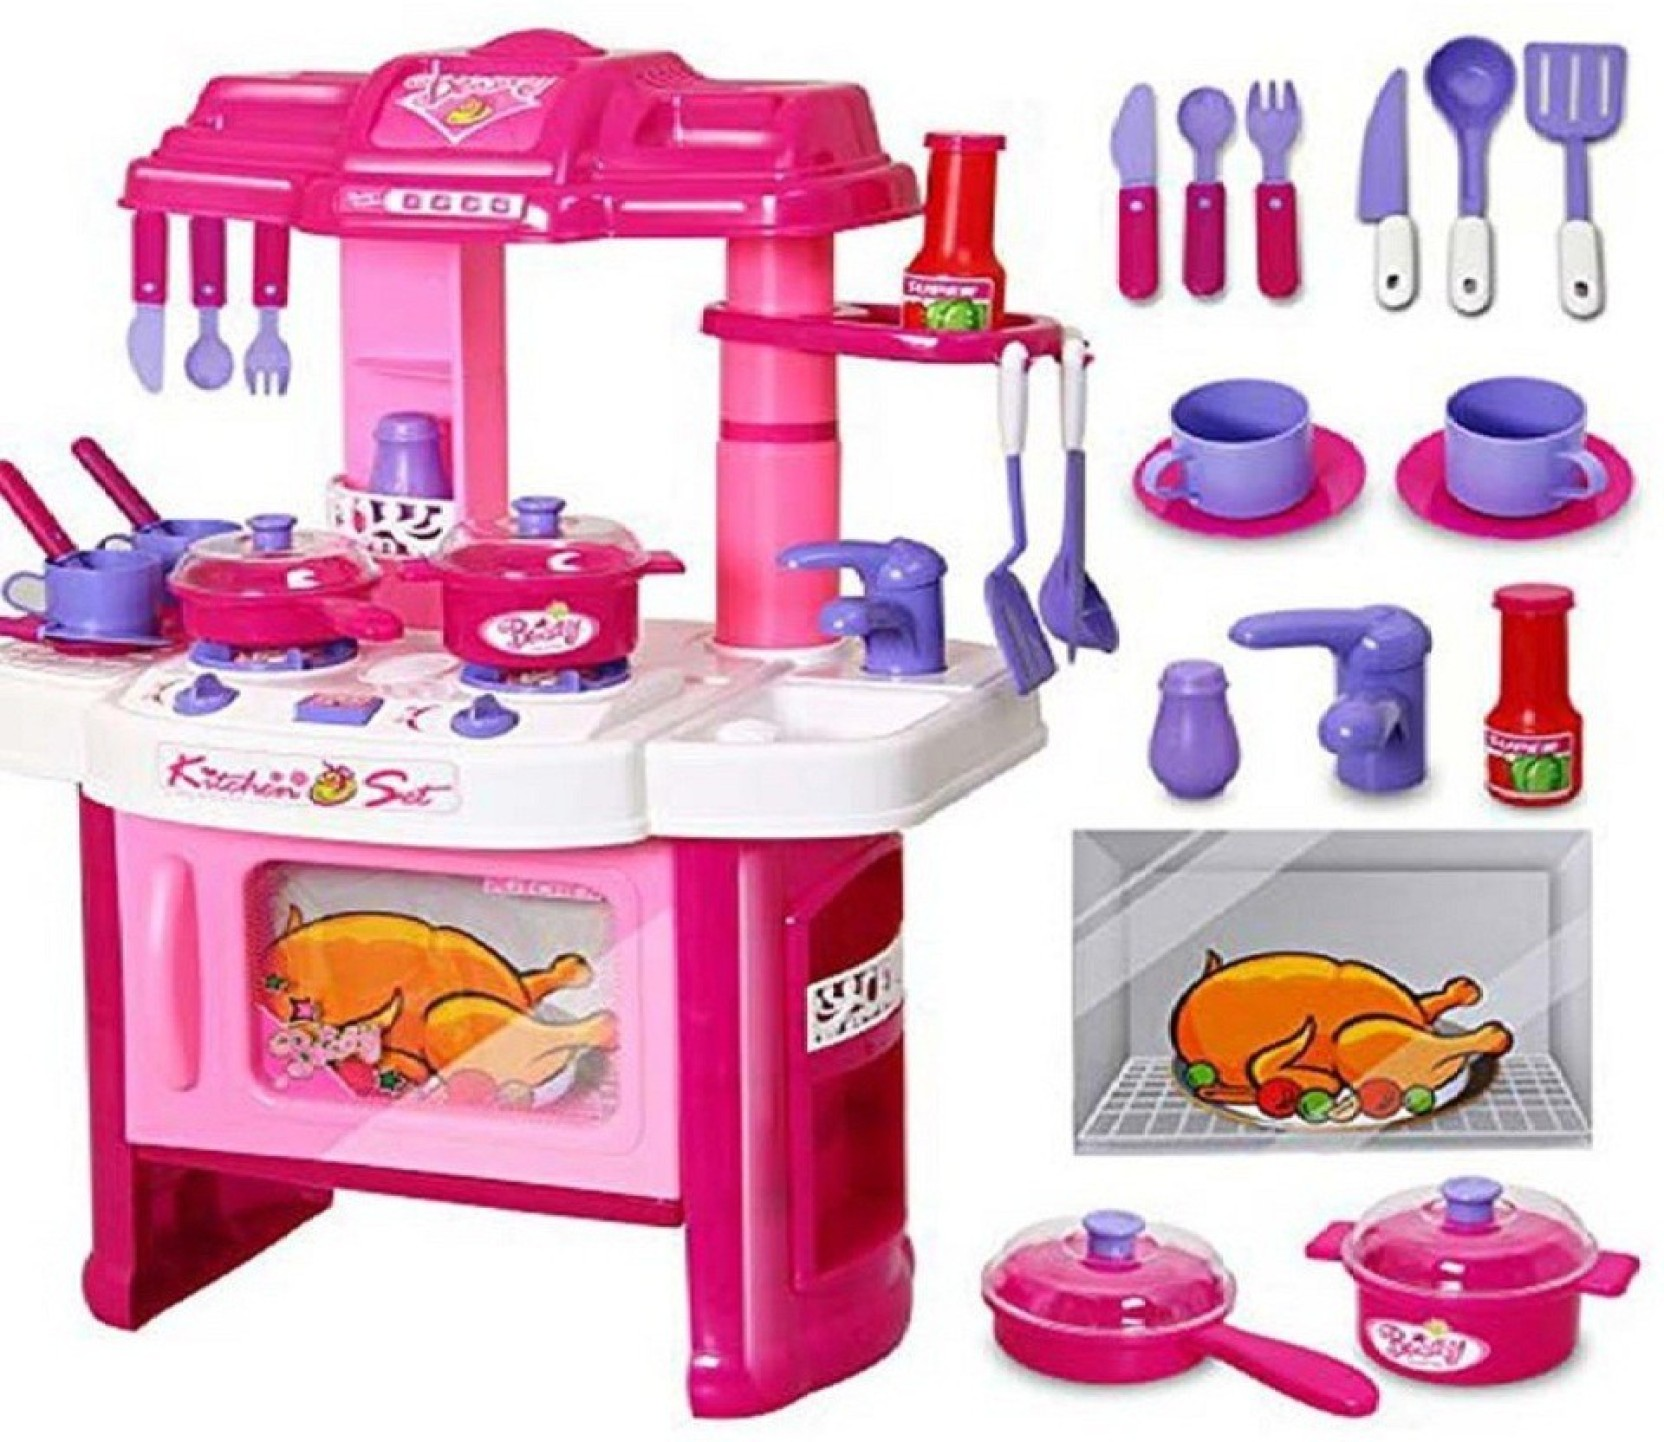 Jvm Luxury Battery Operated Kitchen Play Set Toy For Girls Led Light Sound Flip Flop Share